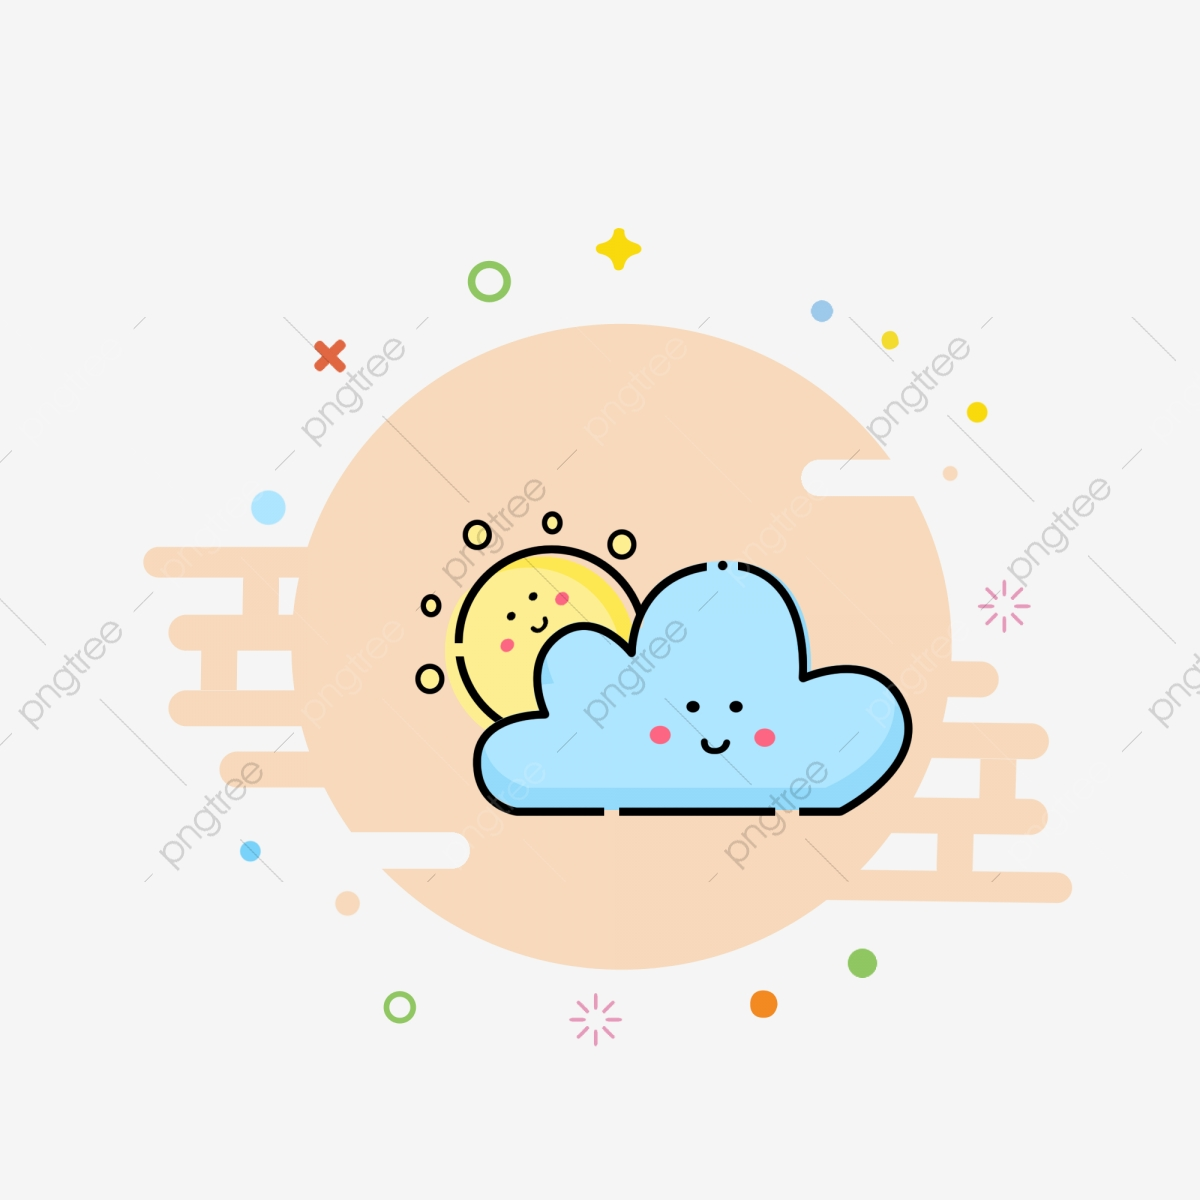 Cartoon icon clipart graphic library library Hand Drawn Icon Cute Icon Cartoon Icon Mbe Style Icon, Cloudy ... graphic library library